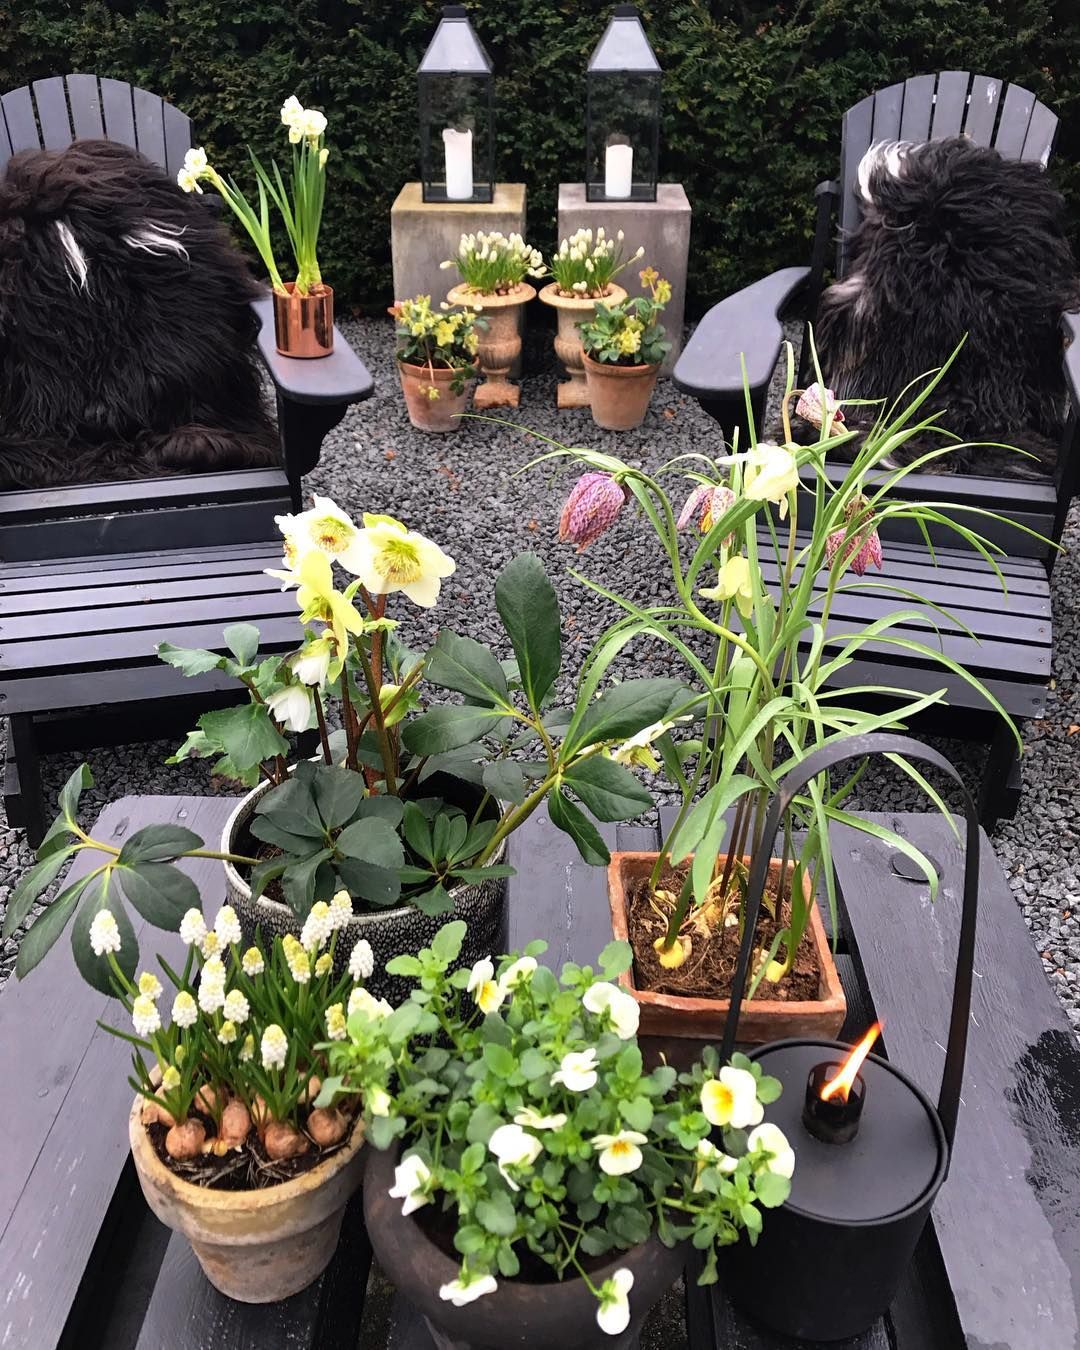 Spring is getting closer ????????????????????Warming up with spring flowers in pots ????????  #springtime #pots: